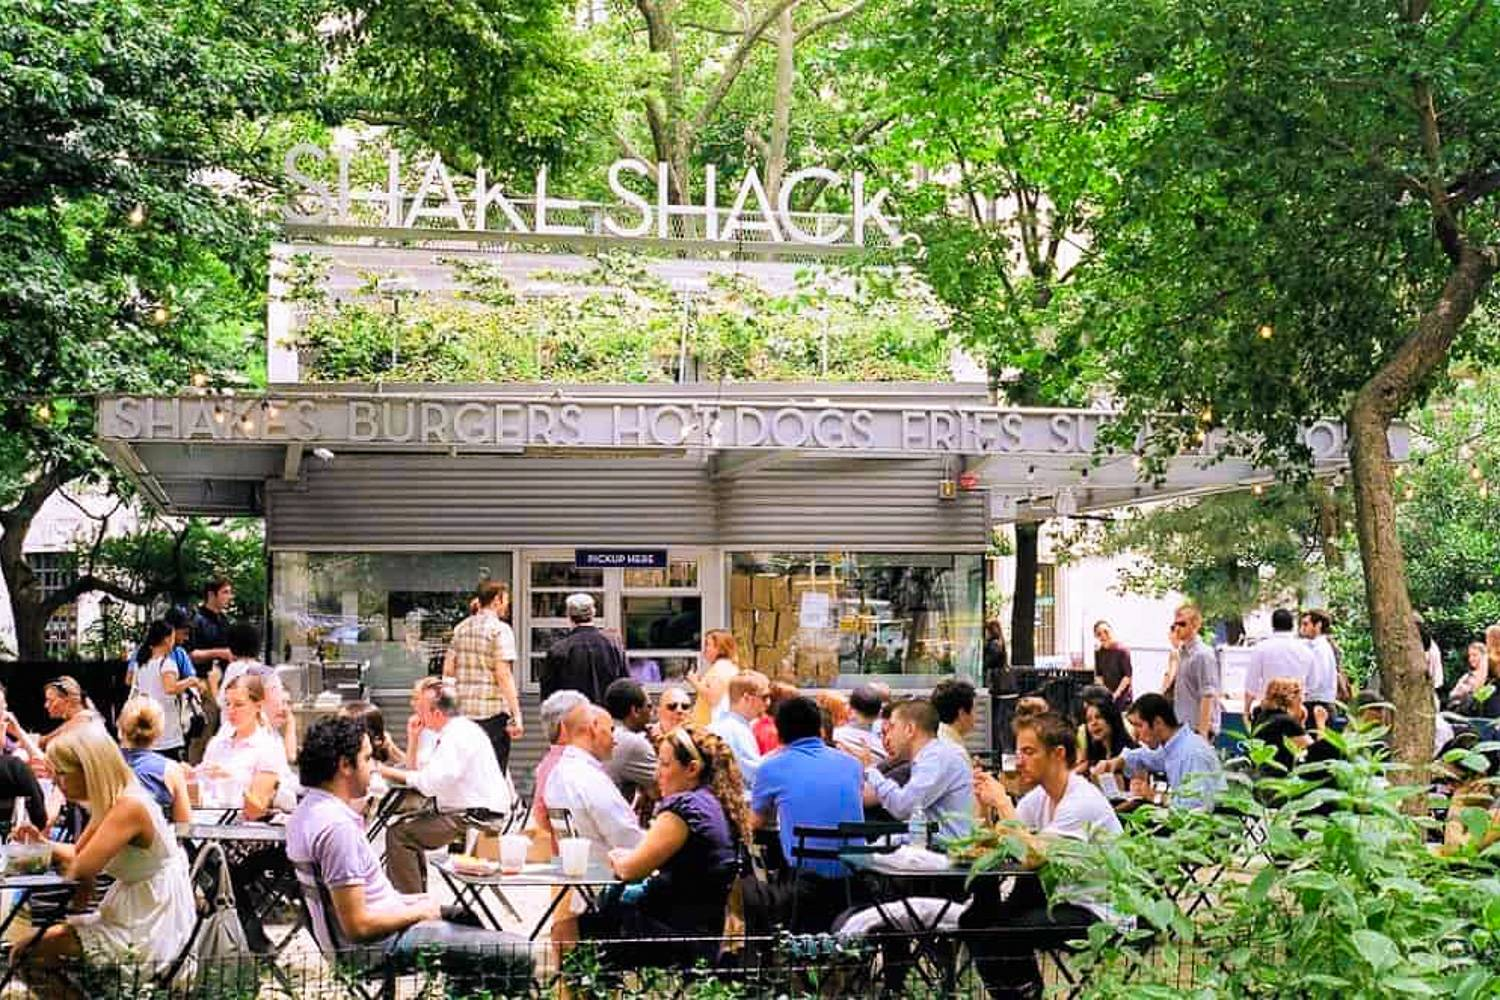 Image of outdoor dining at Shake Shack which has a dog-friendly menu (Image credit: Chelsea Nesvig via Flickr)